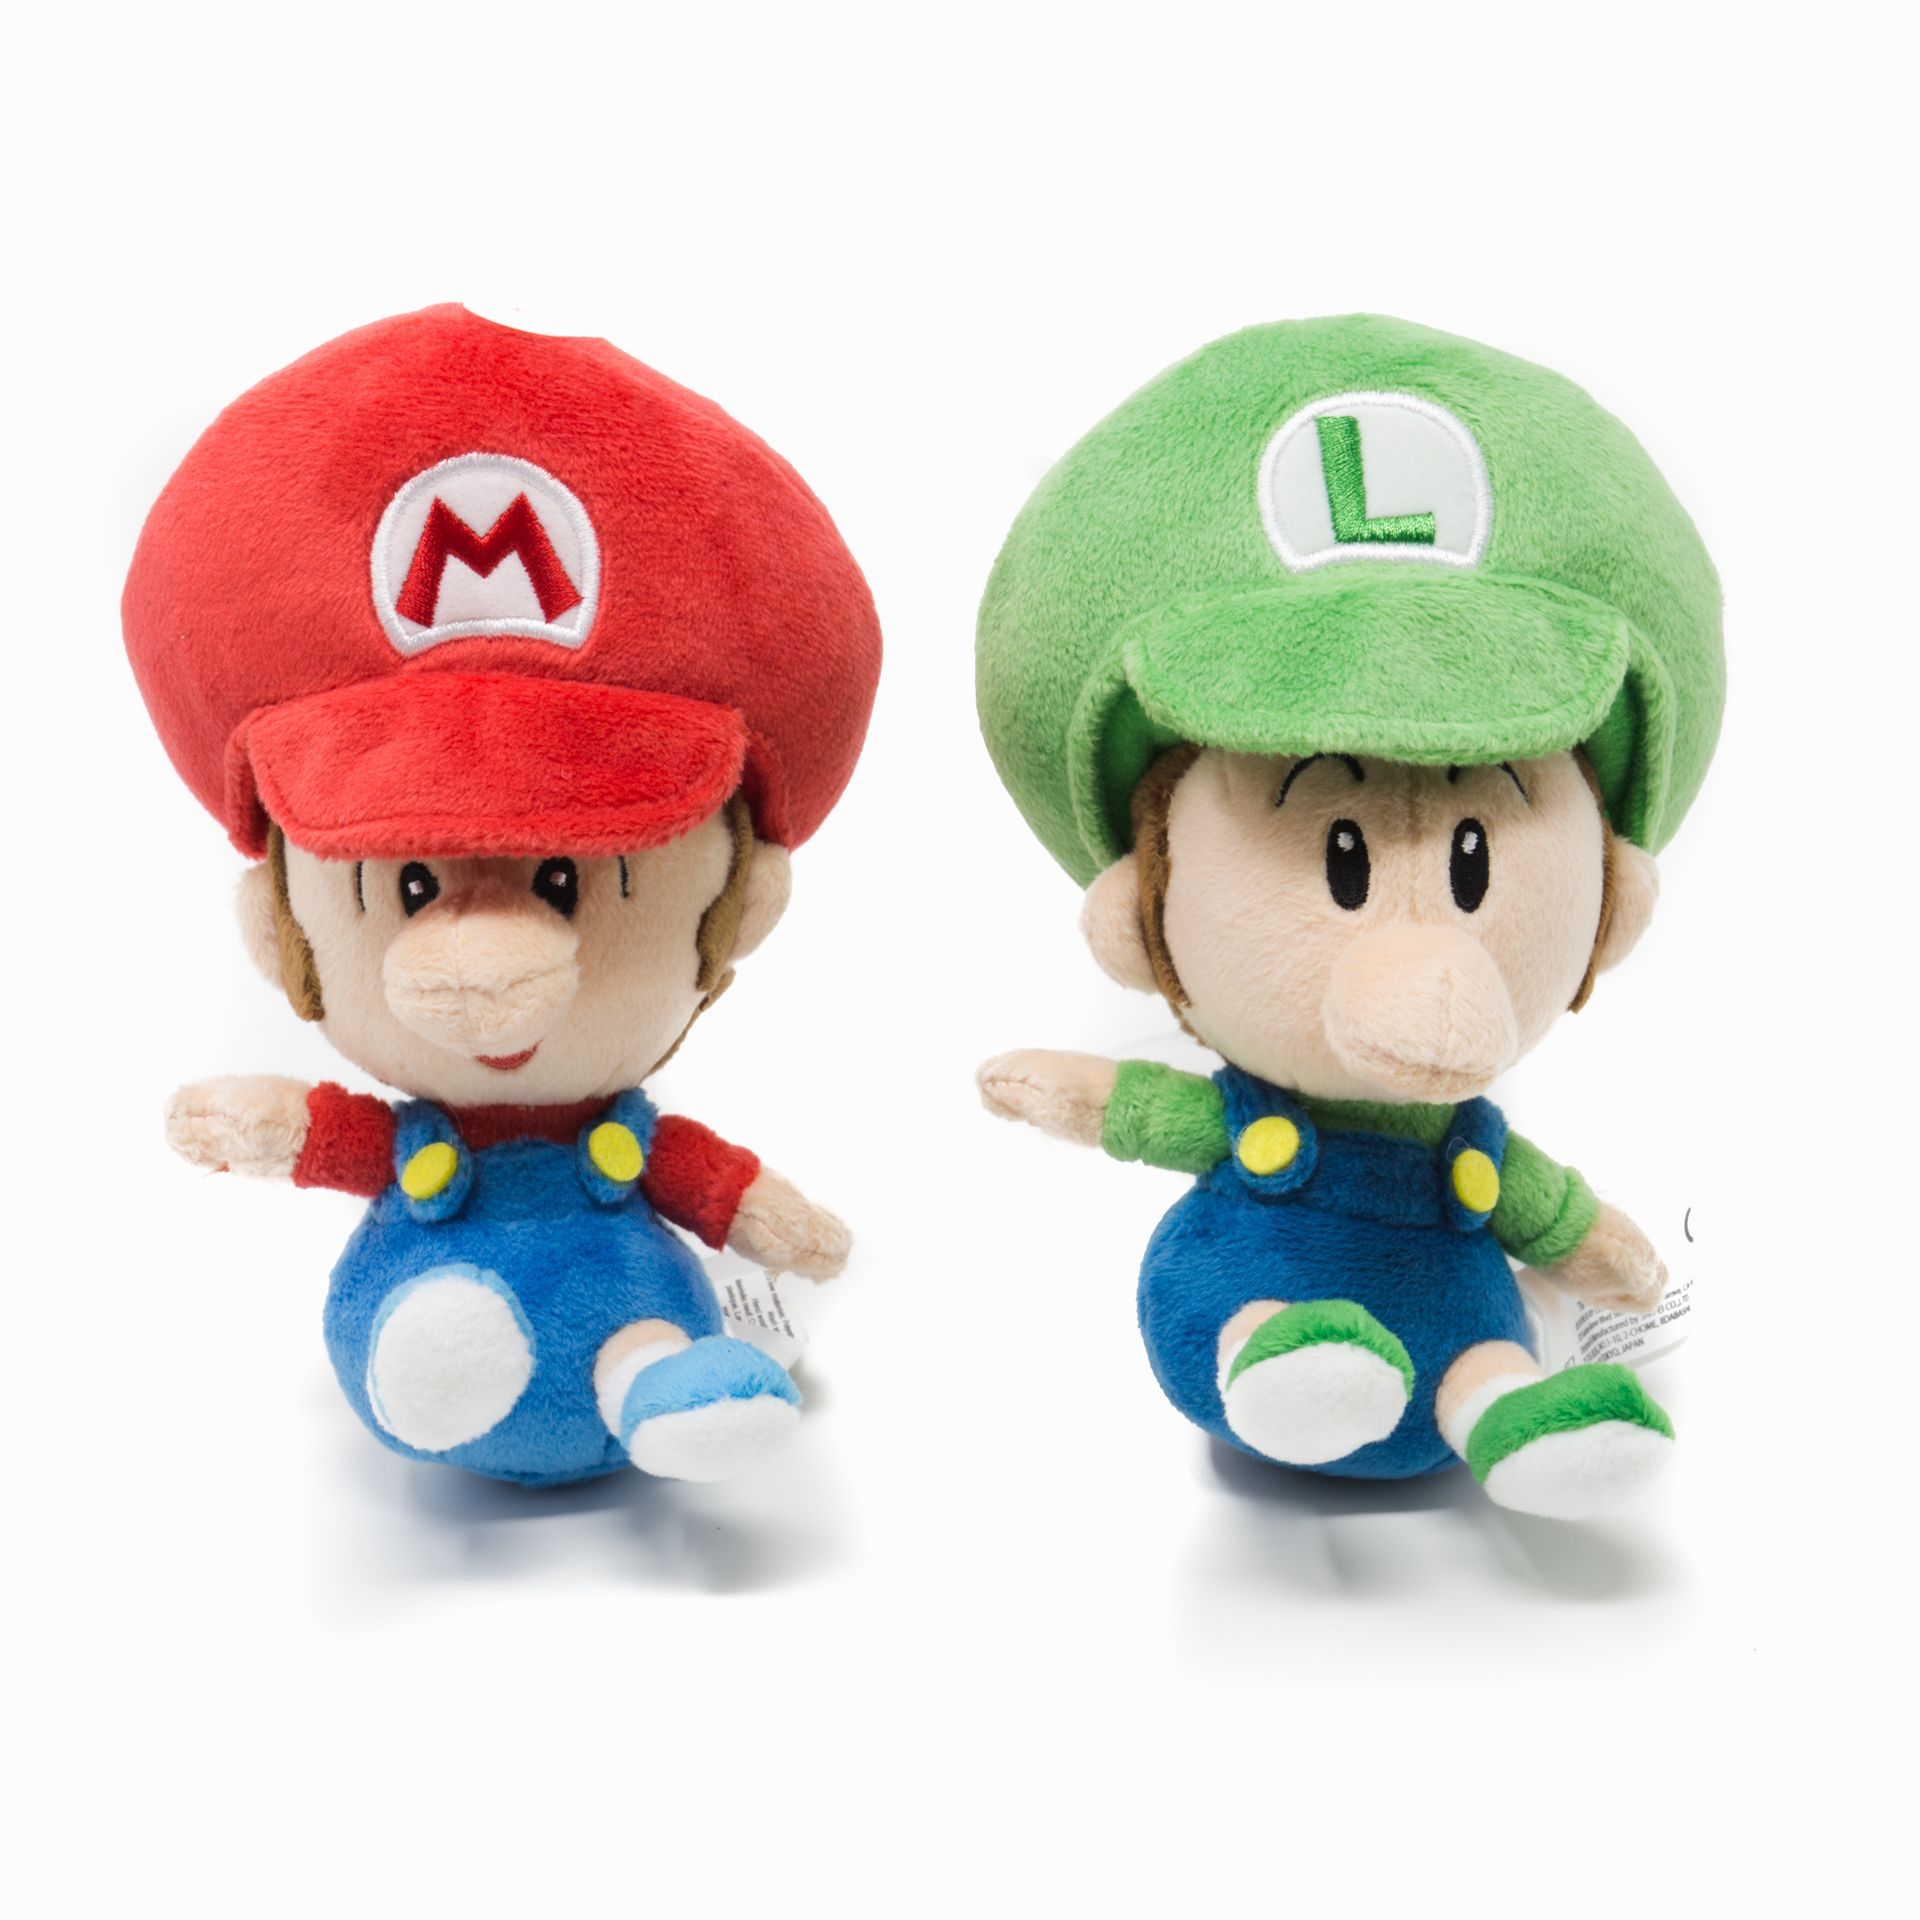 Super Mario Baby Mario And Baby Luigi Plush Super Mario Mario